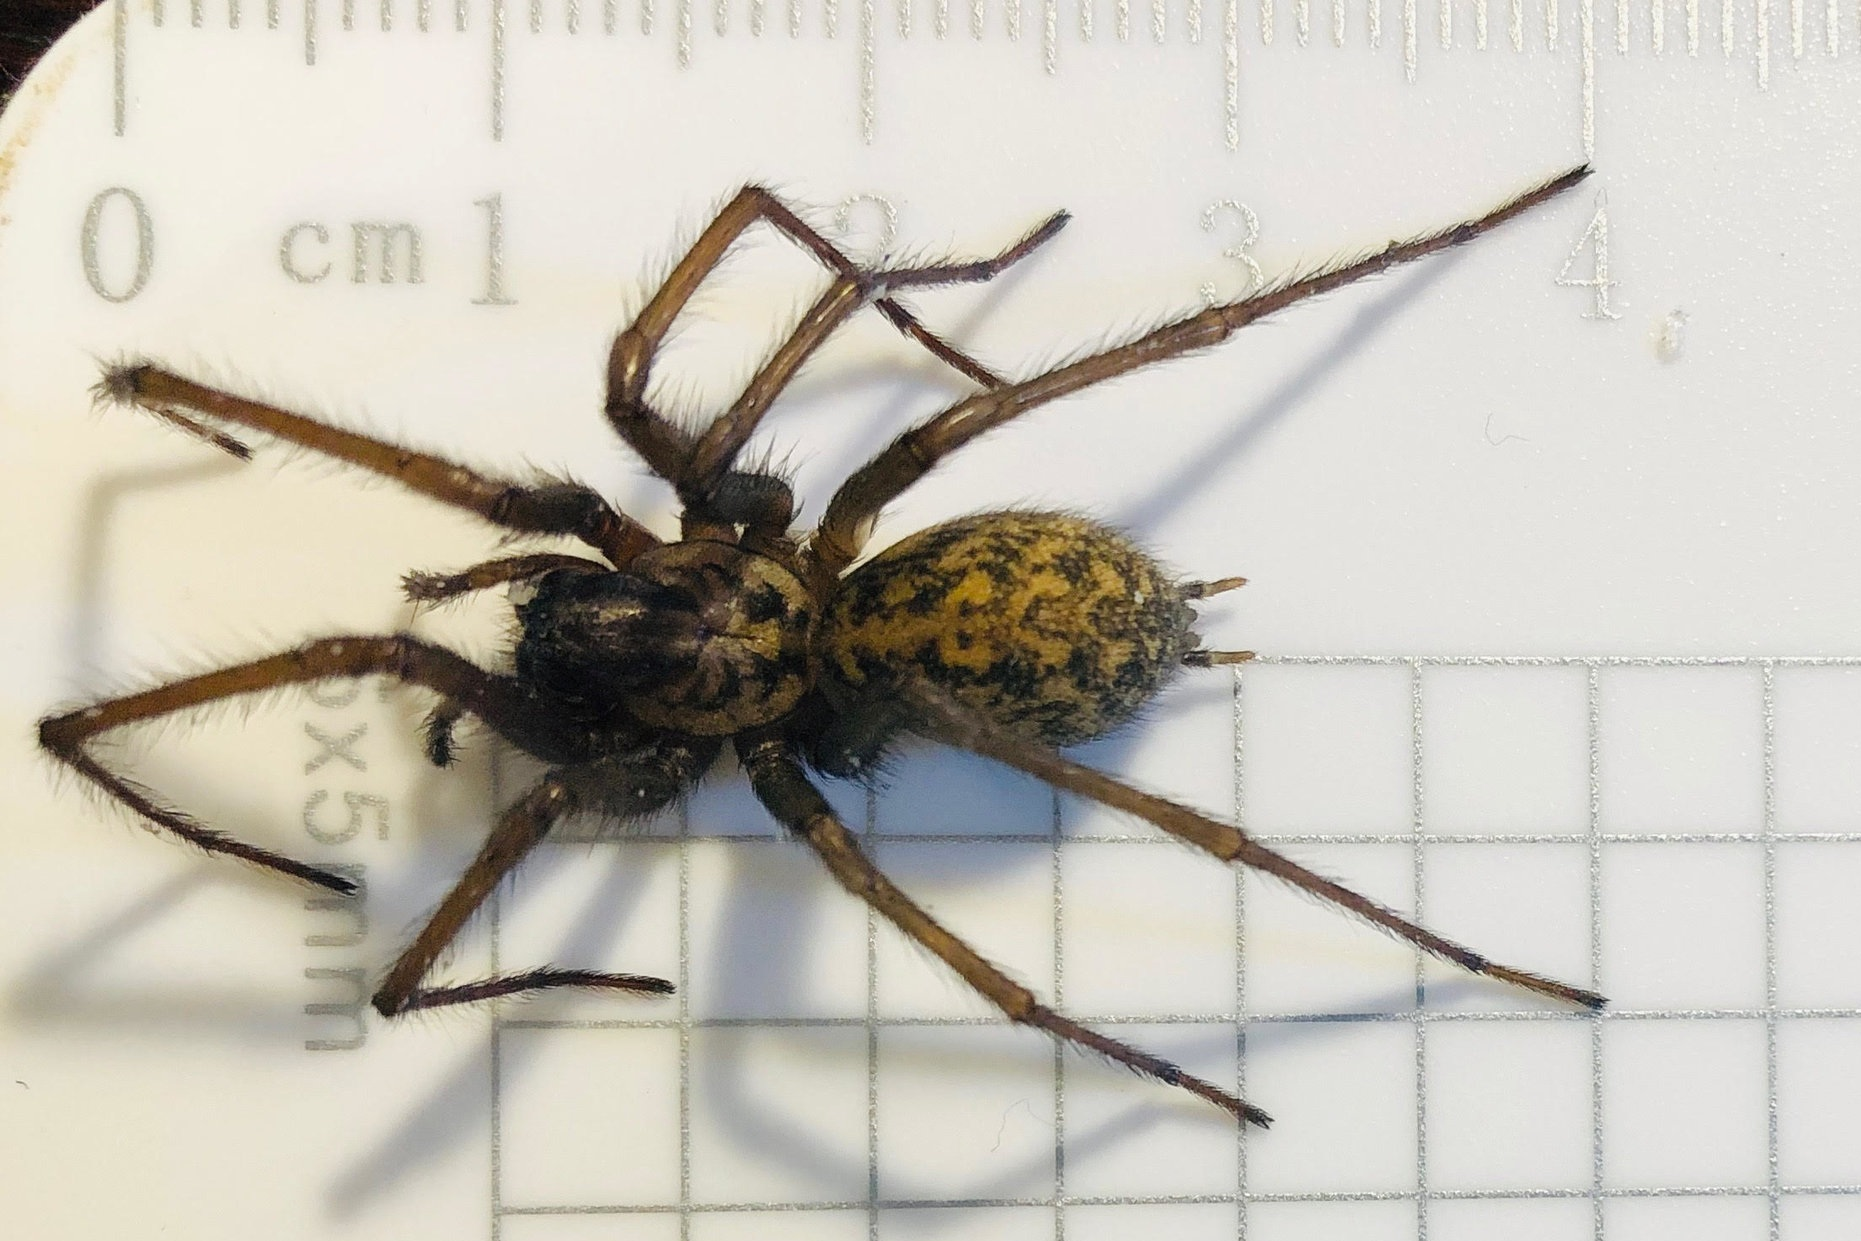 Deceased House Spider ( Tegenaria gigantea ) measurements | Credit: Talita Bateman